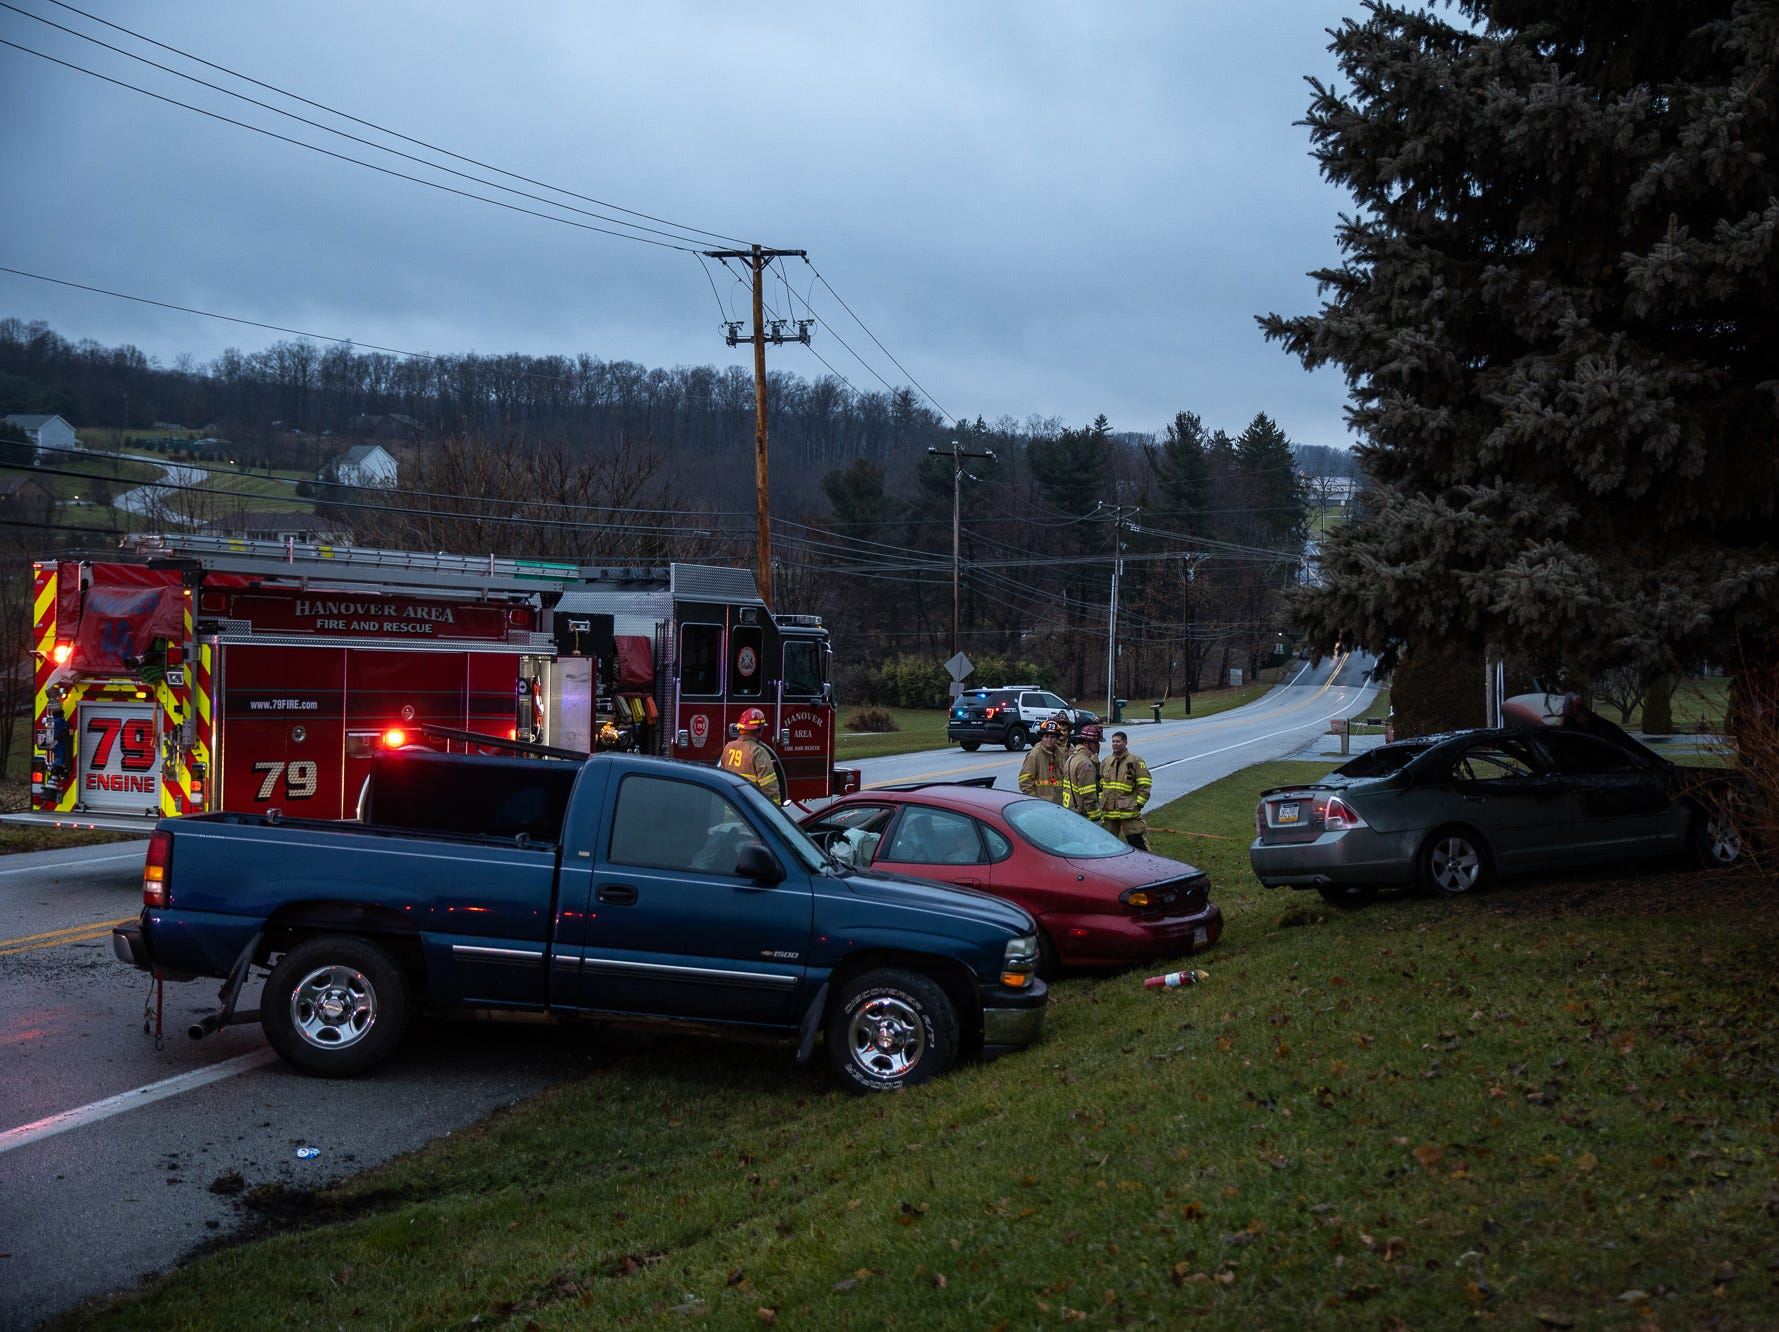 Firefighters work at the scene of a three-vehicle crash with a fully involved car fire and three injuries on the 2200 block of Broadway in Penn Township on Dec. 16. Two women were taken to the hospital following the crash, according to officials.